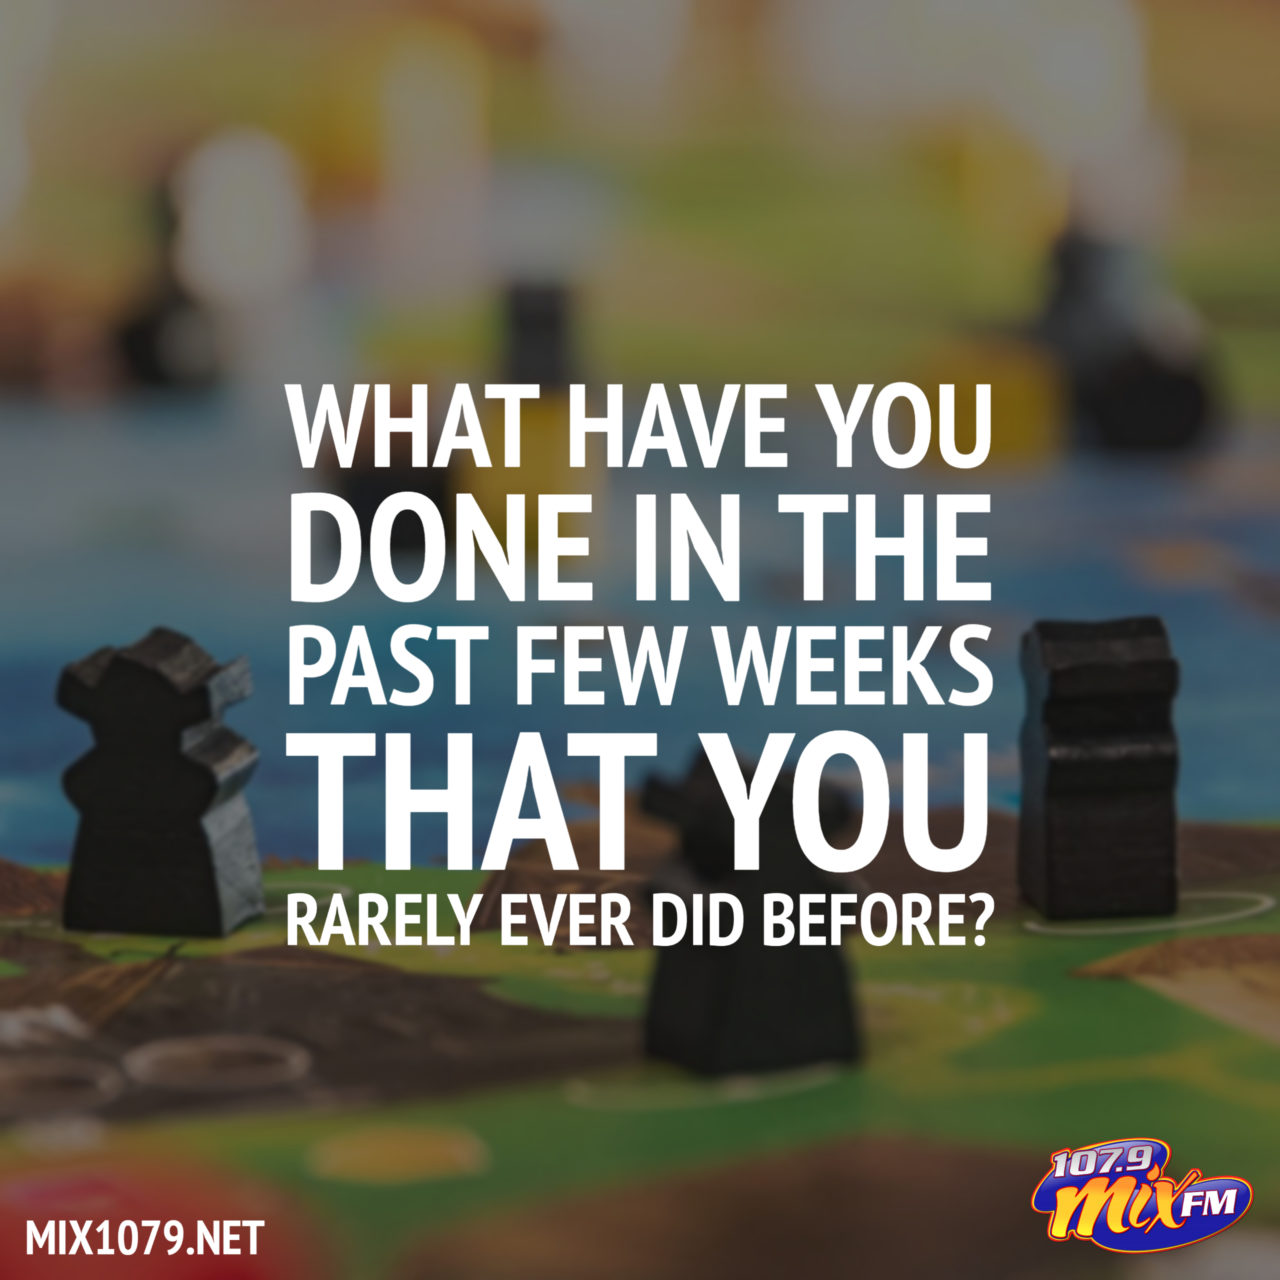 What Have You Done in the Past Few Weeks That You Rarely Ever Did Before?